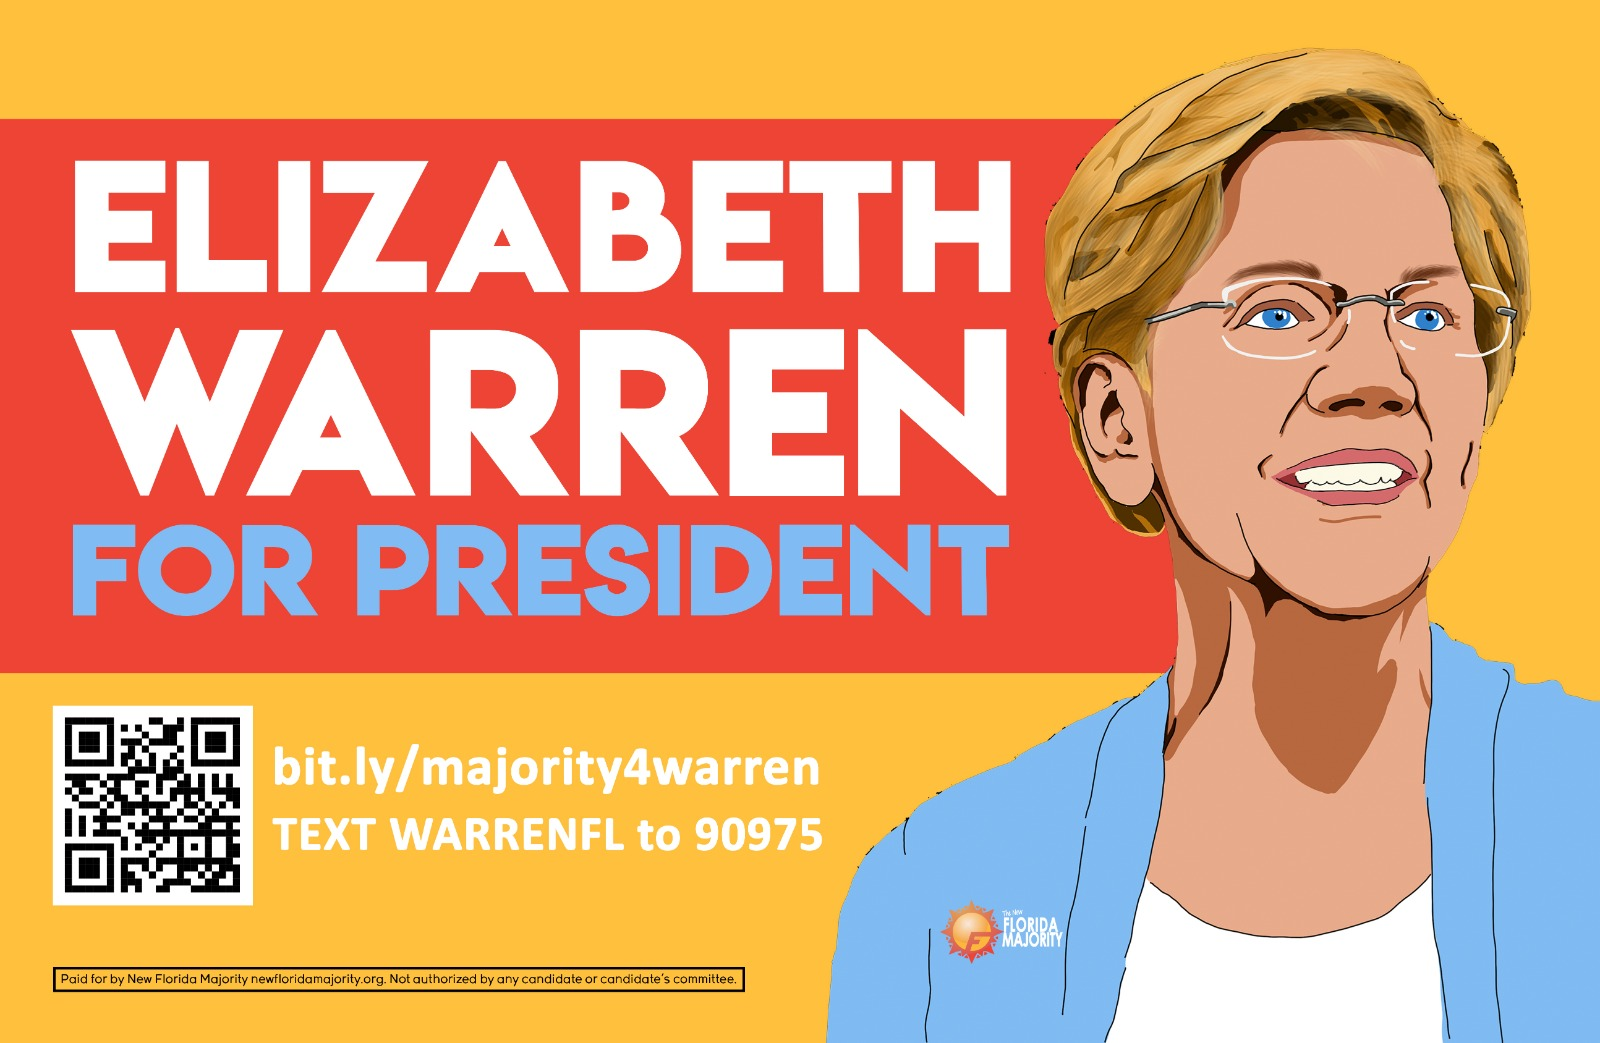 Florida Primary: NewFM Launches Massive Voter Outreach to Support Elizabeth Warren